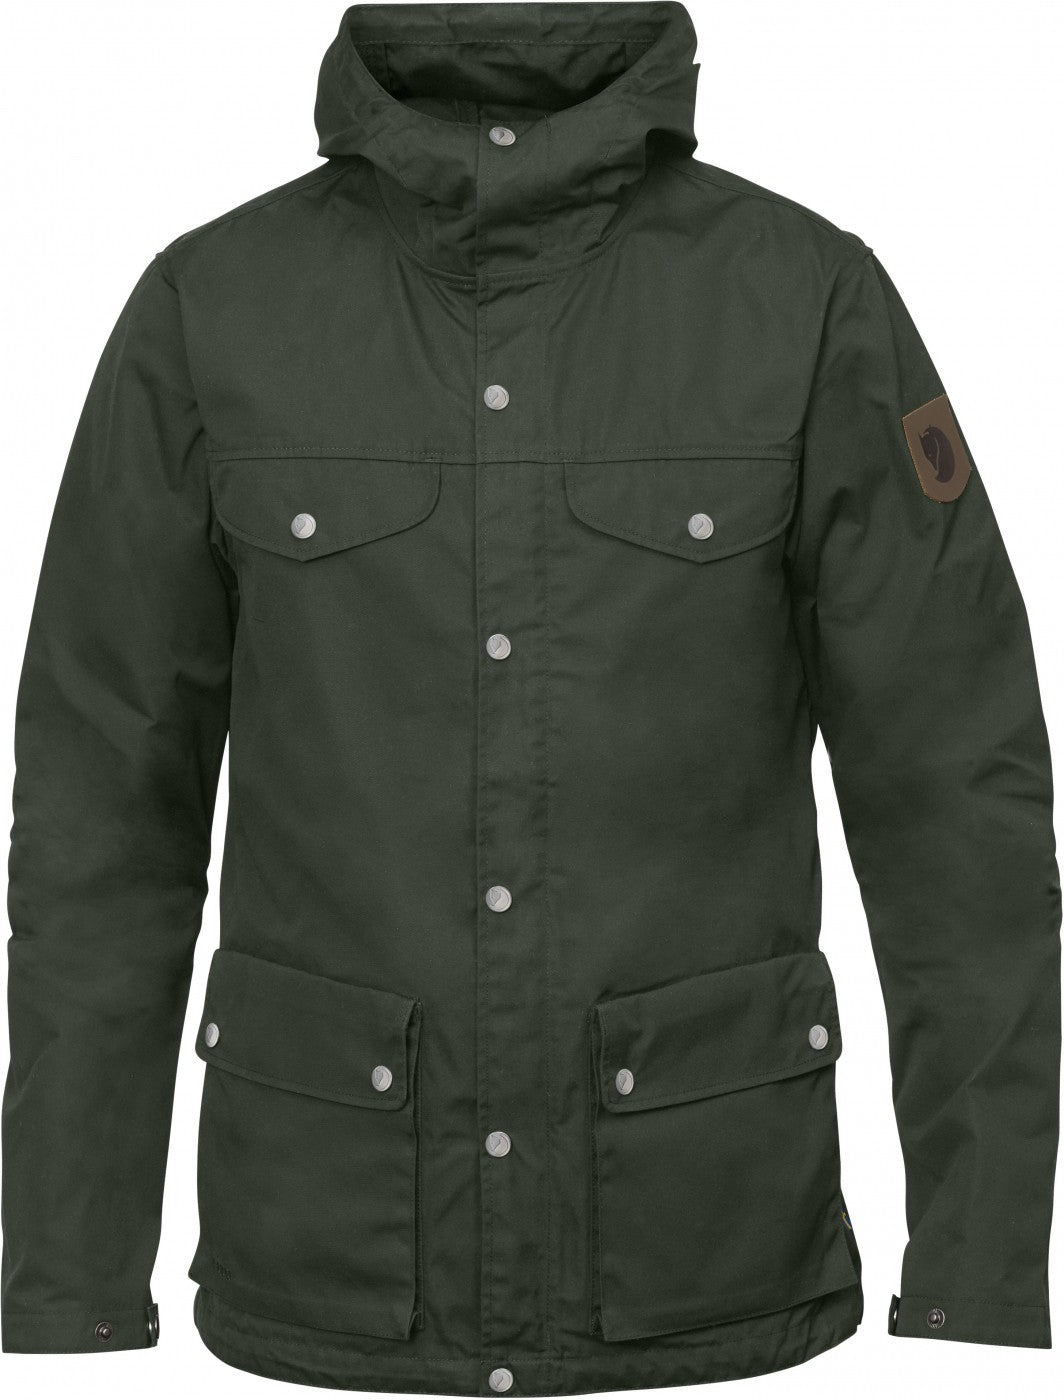 Fjallraven Greenland Jacket - Trailblazer Outdoors, Pickering